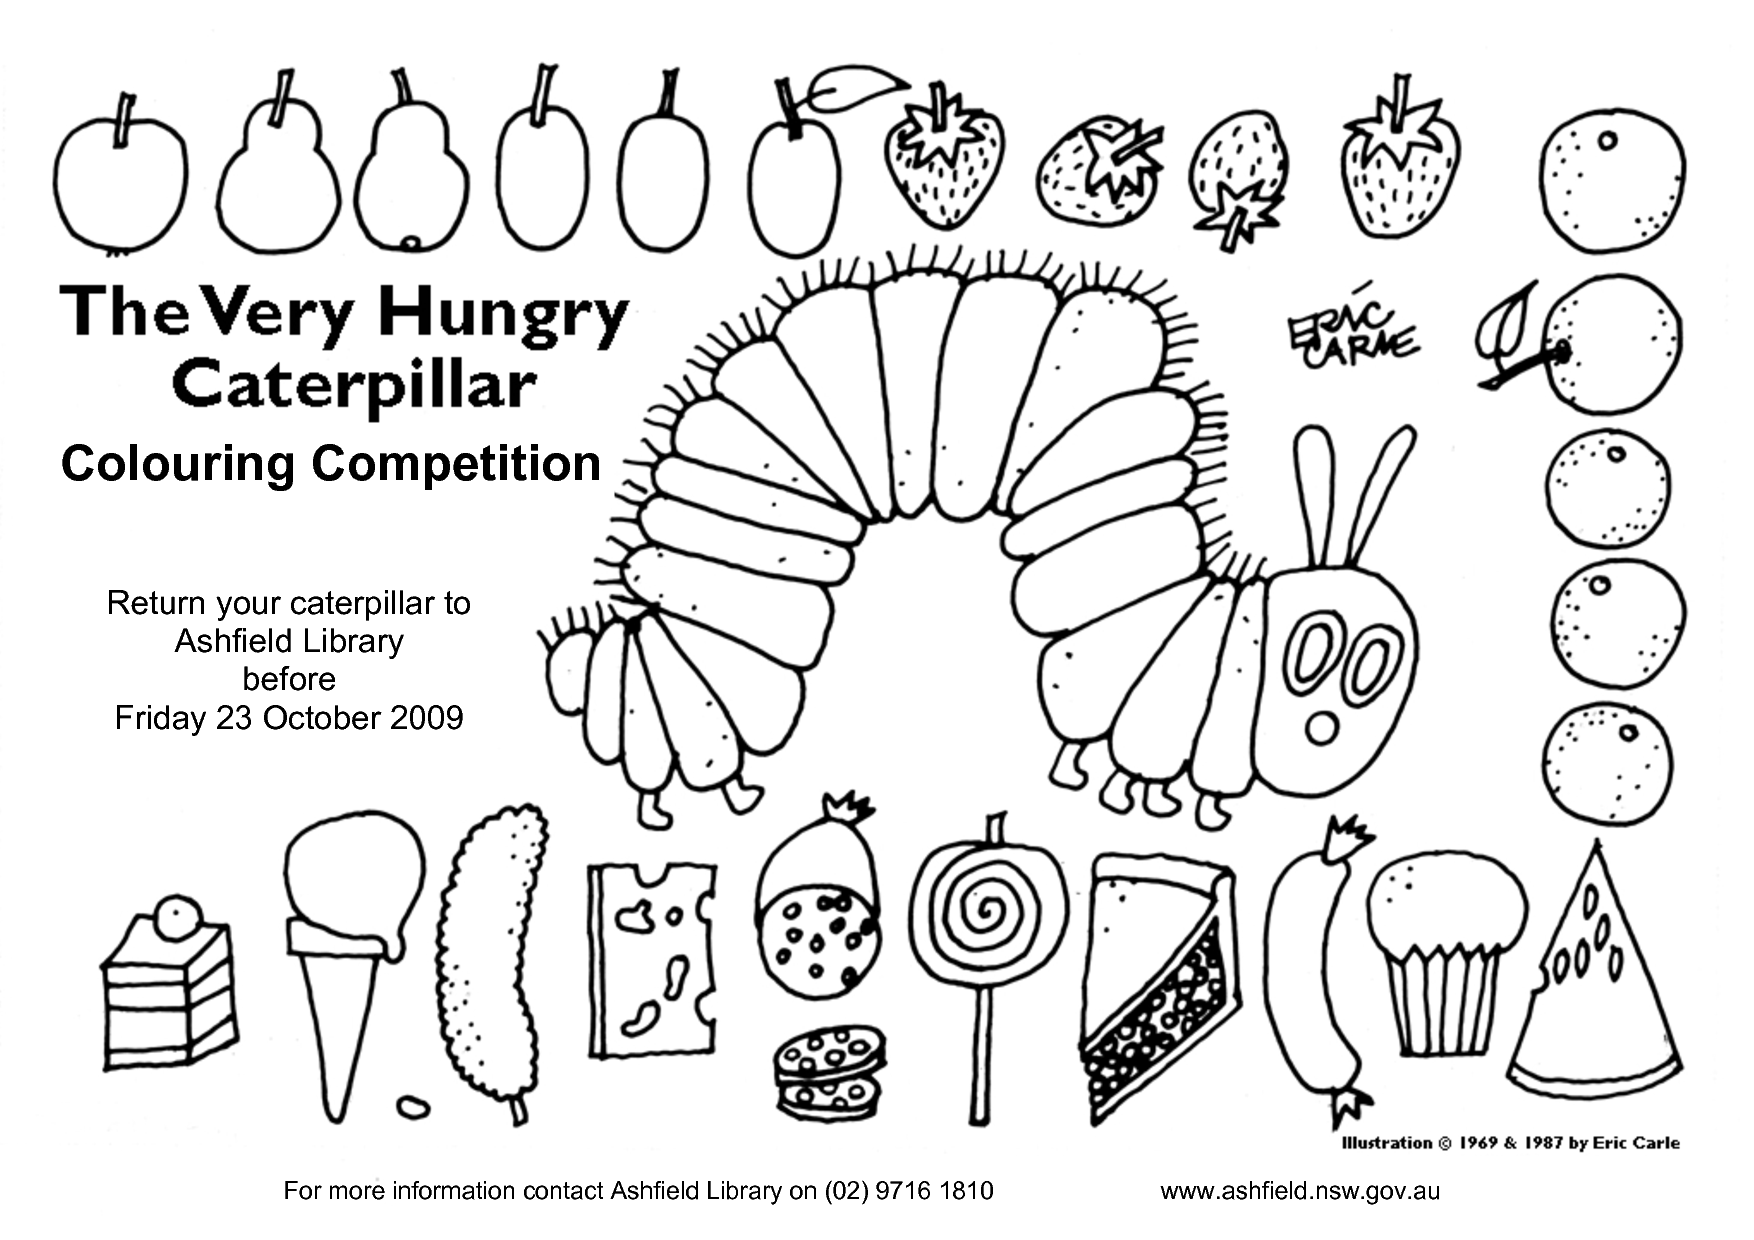 - Very-hungry-caterpillar-coloring-pages_31087.png 1,754×1,240